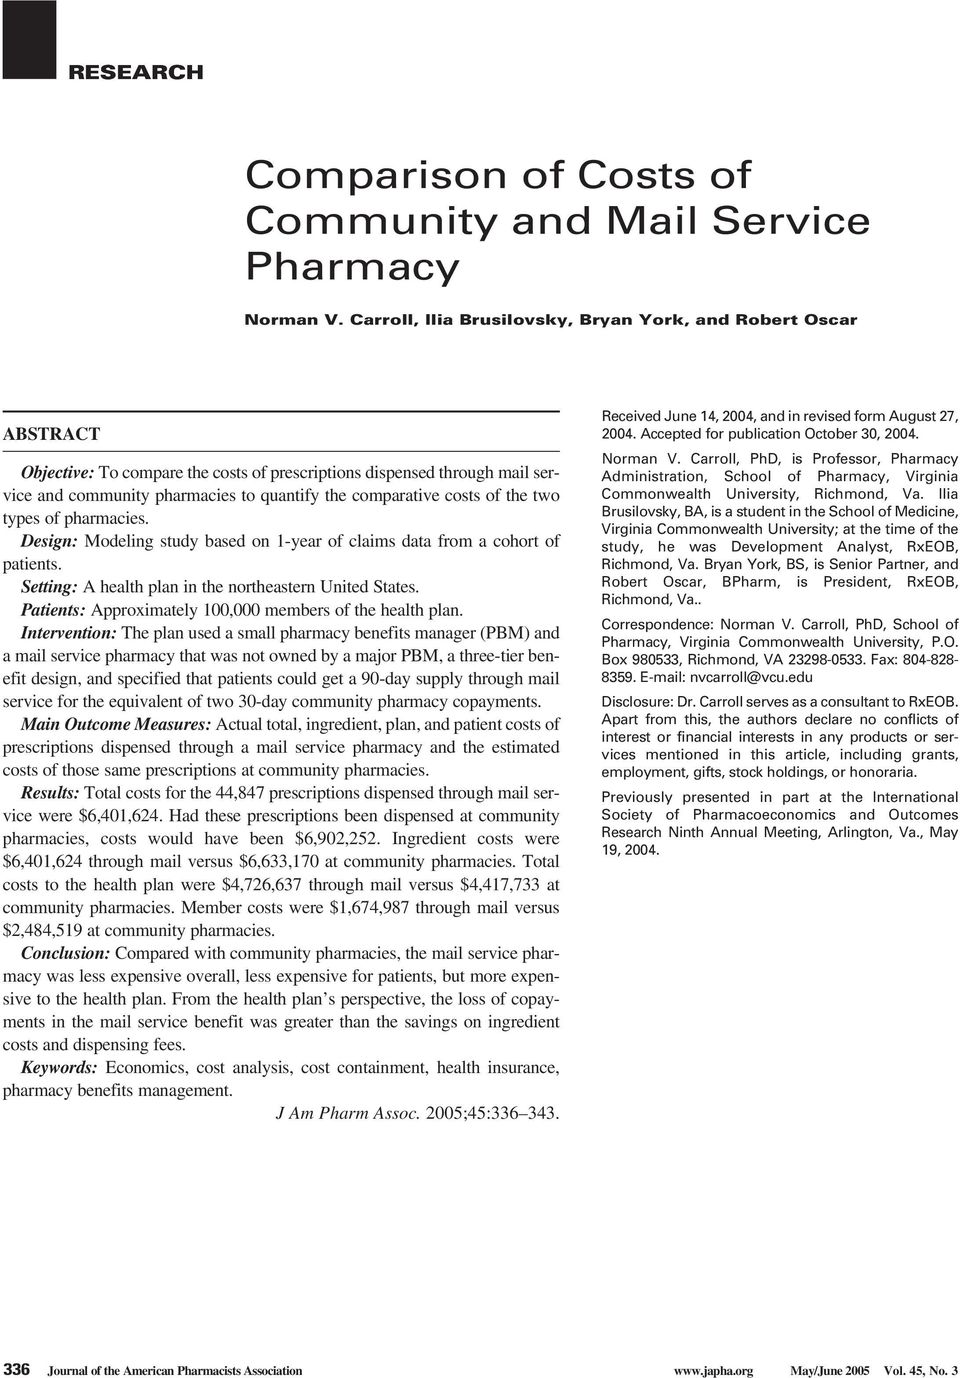 costs of the two types of pharmacies. Design: Modeling study based on 1-year of claims data from a cohort of patients. Setting: A health plan in the northeastern United States.